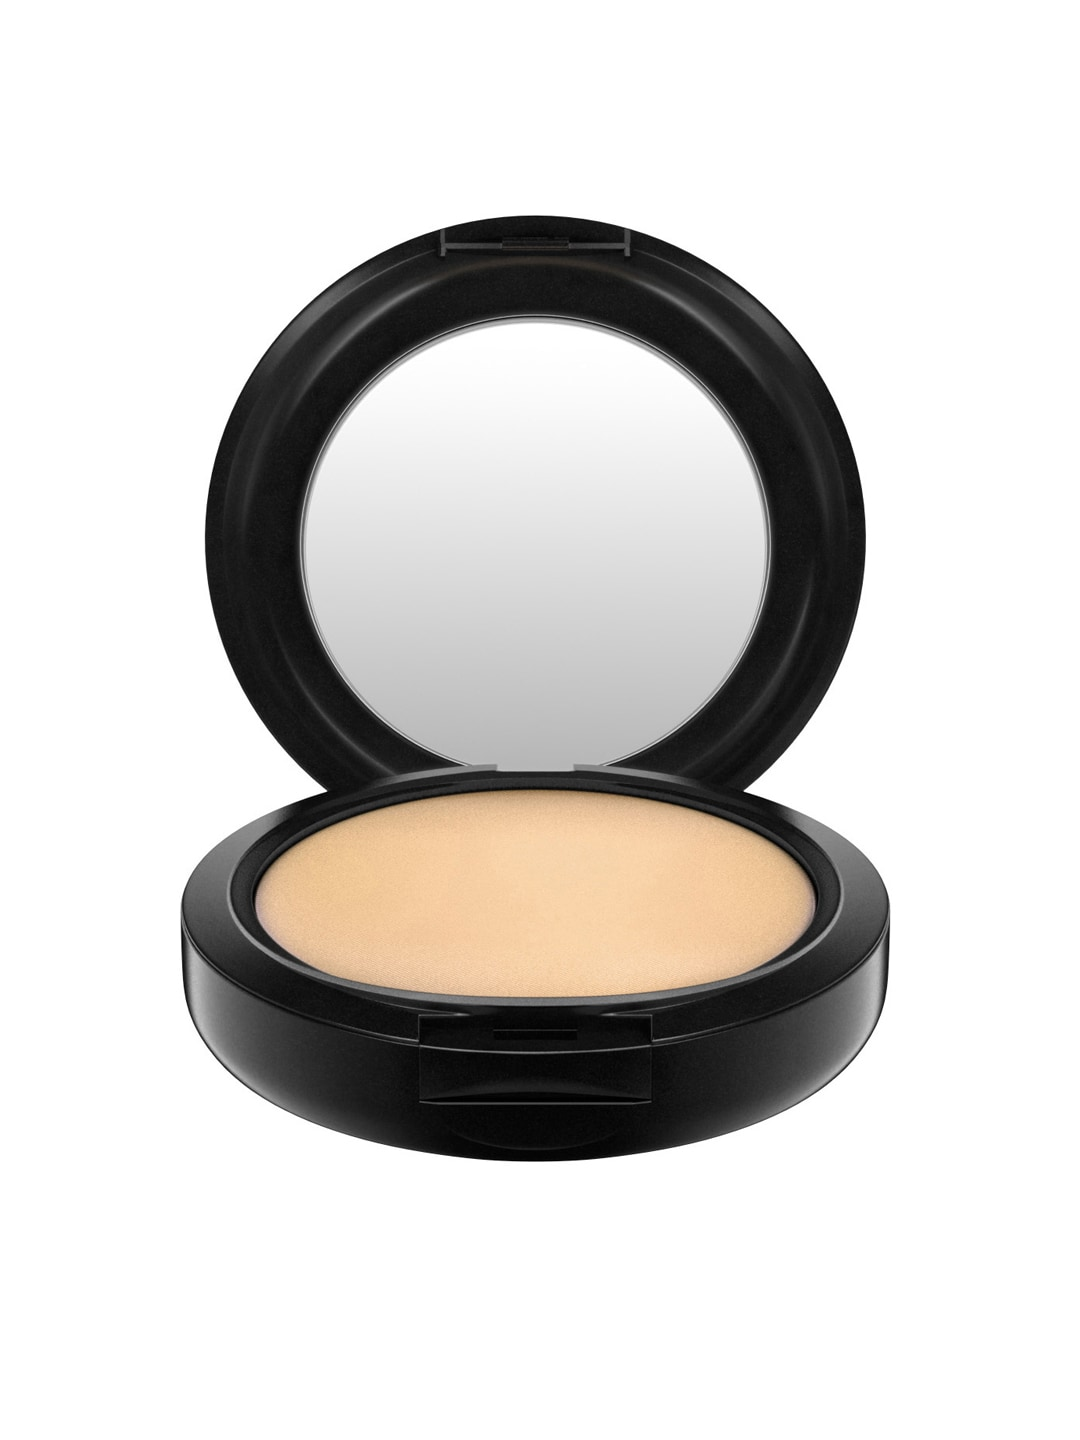 M.A.C NC30 Studio Fix Powder Plus Foundation image